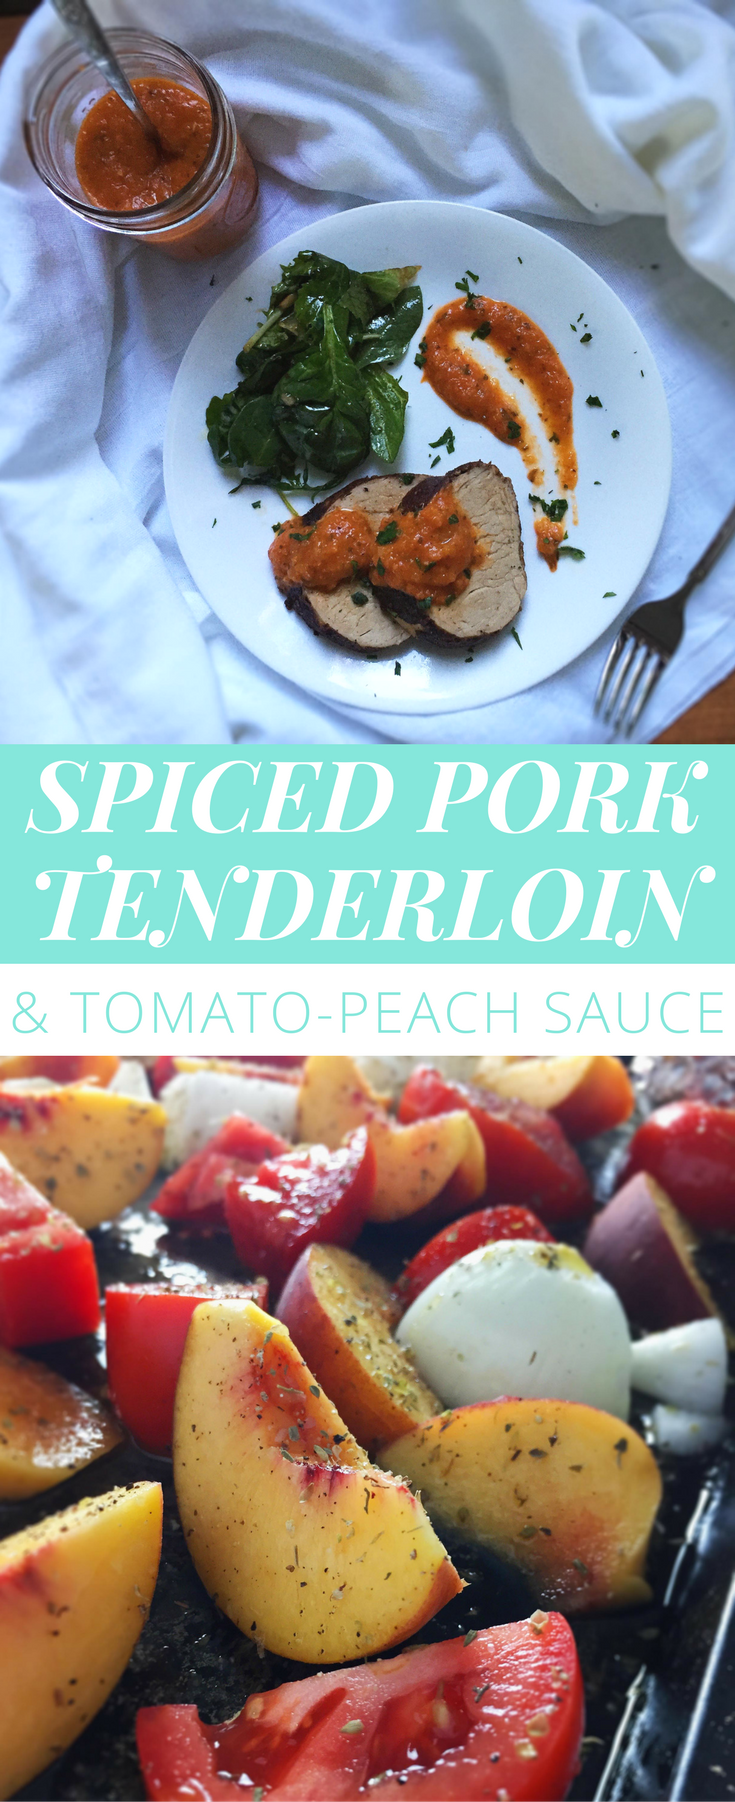 spiced-pork-tenderloin-w-tomato-peach-sauce-long-pin